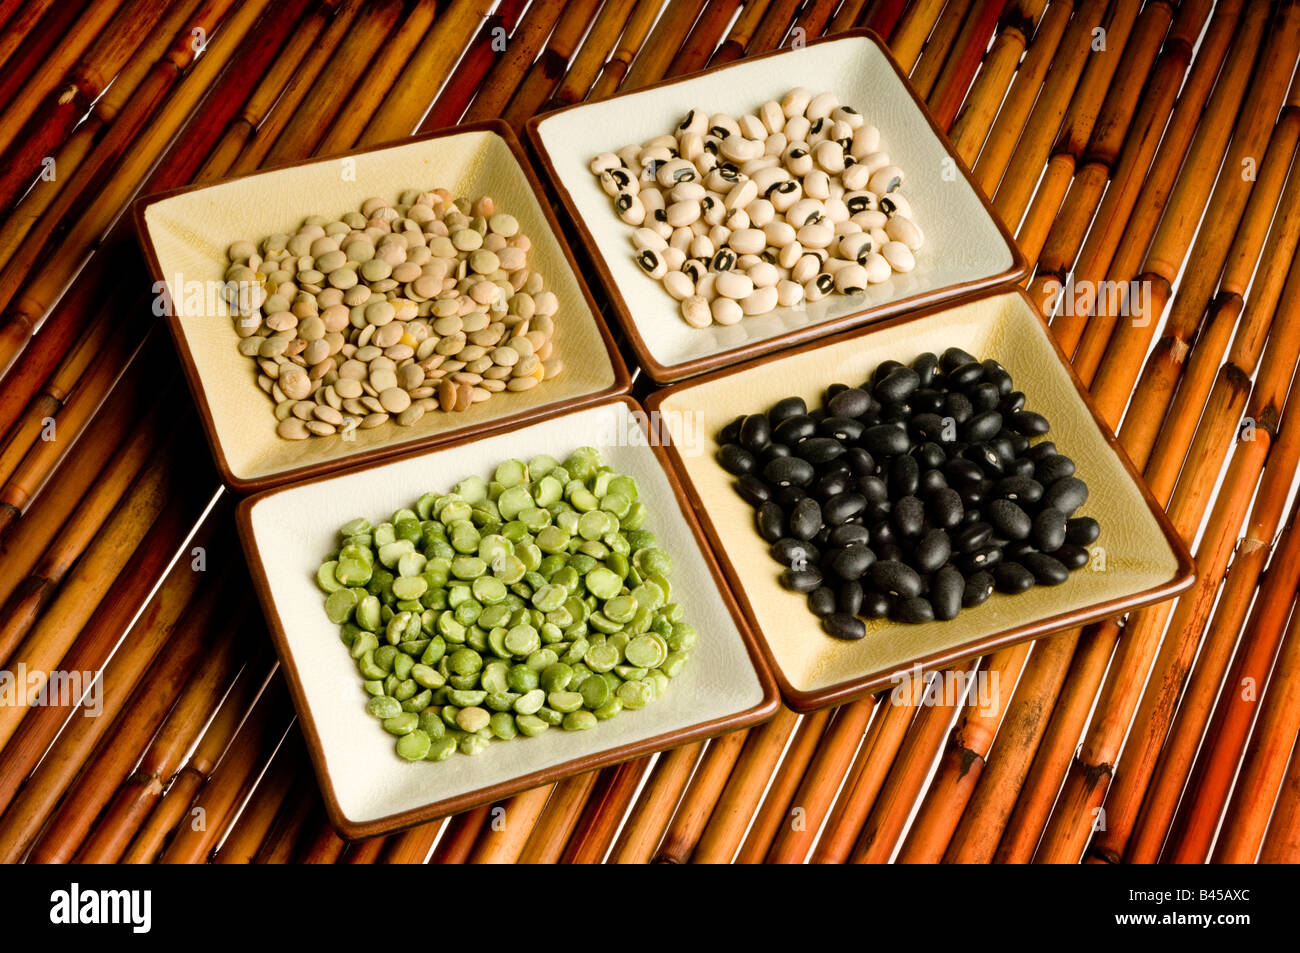 four dishes of lentils, peas, beans, black eyed peas on bamboo Stock Photo